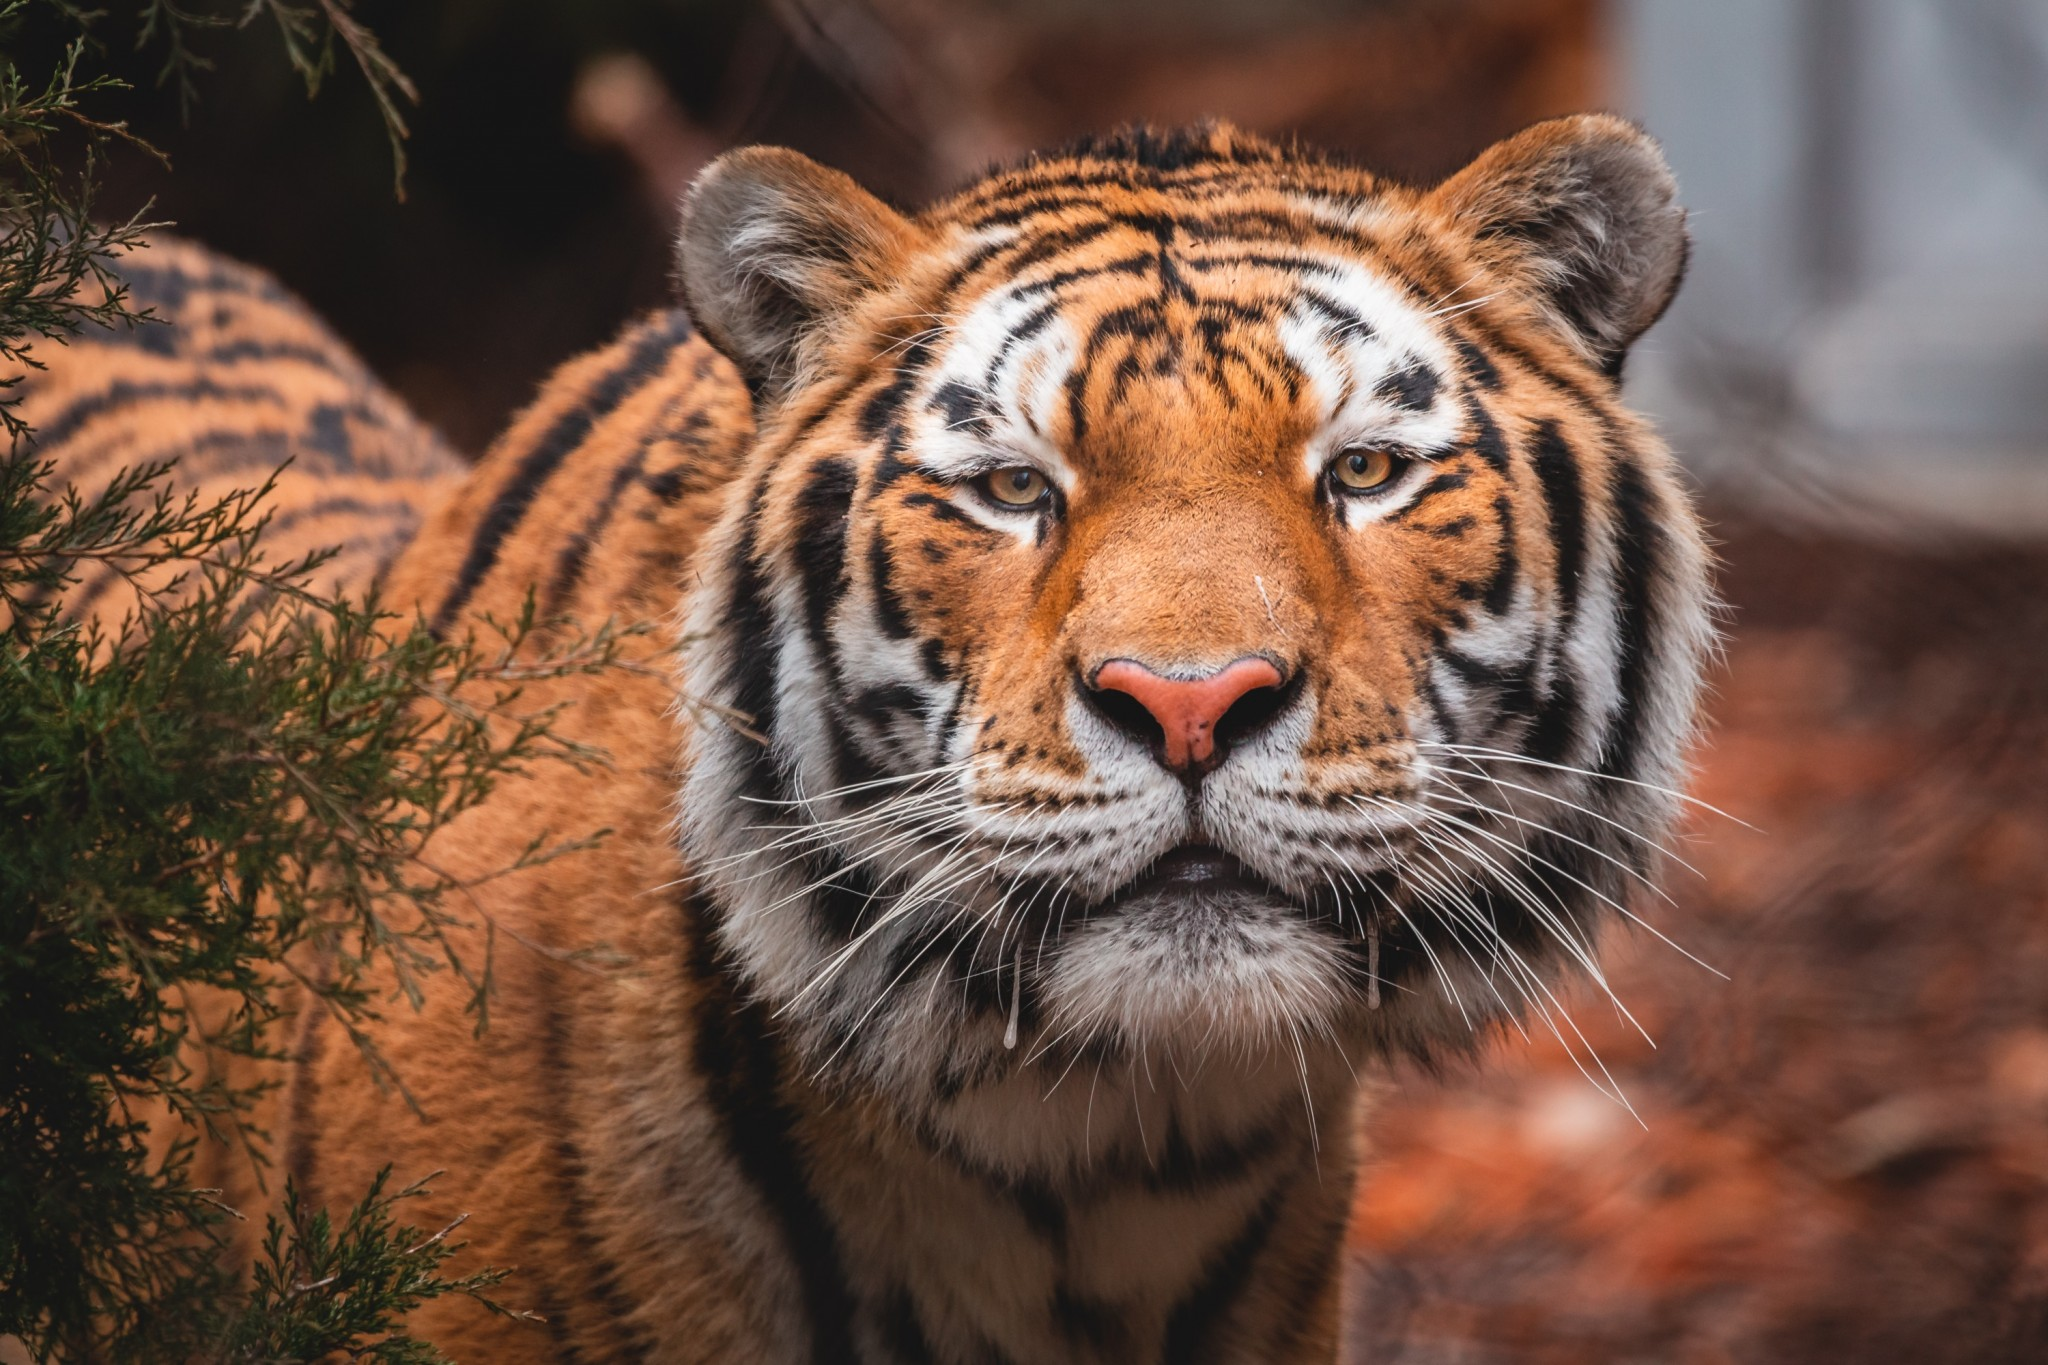 Titan, a 3-1/2-year-old male Amur tiger, is the newest resident at Toledo Zoo's Tiger Terrace.  (Photo courtesy of the Toledo Zoo)